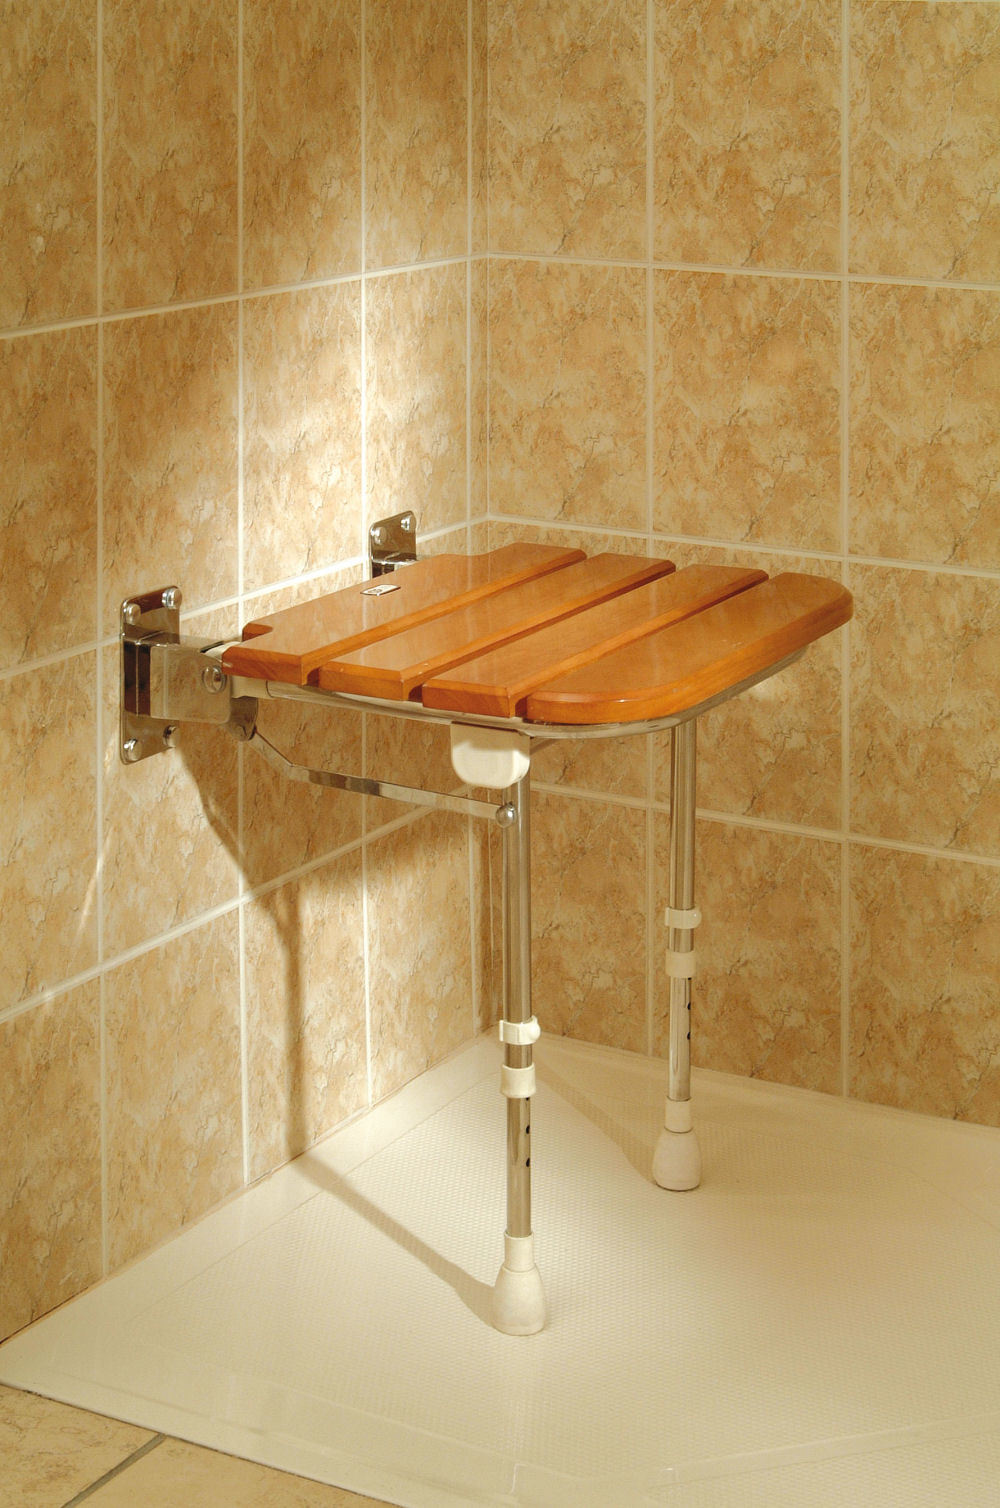 Foldable Shower Seat Fold Up Wall Mounted Shower Seat